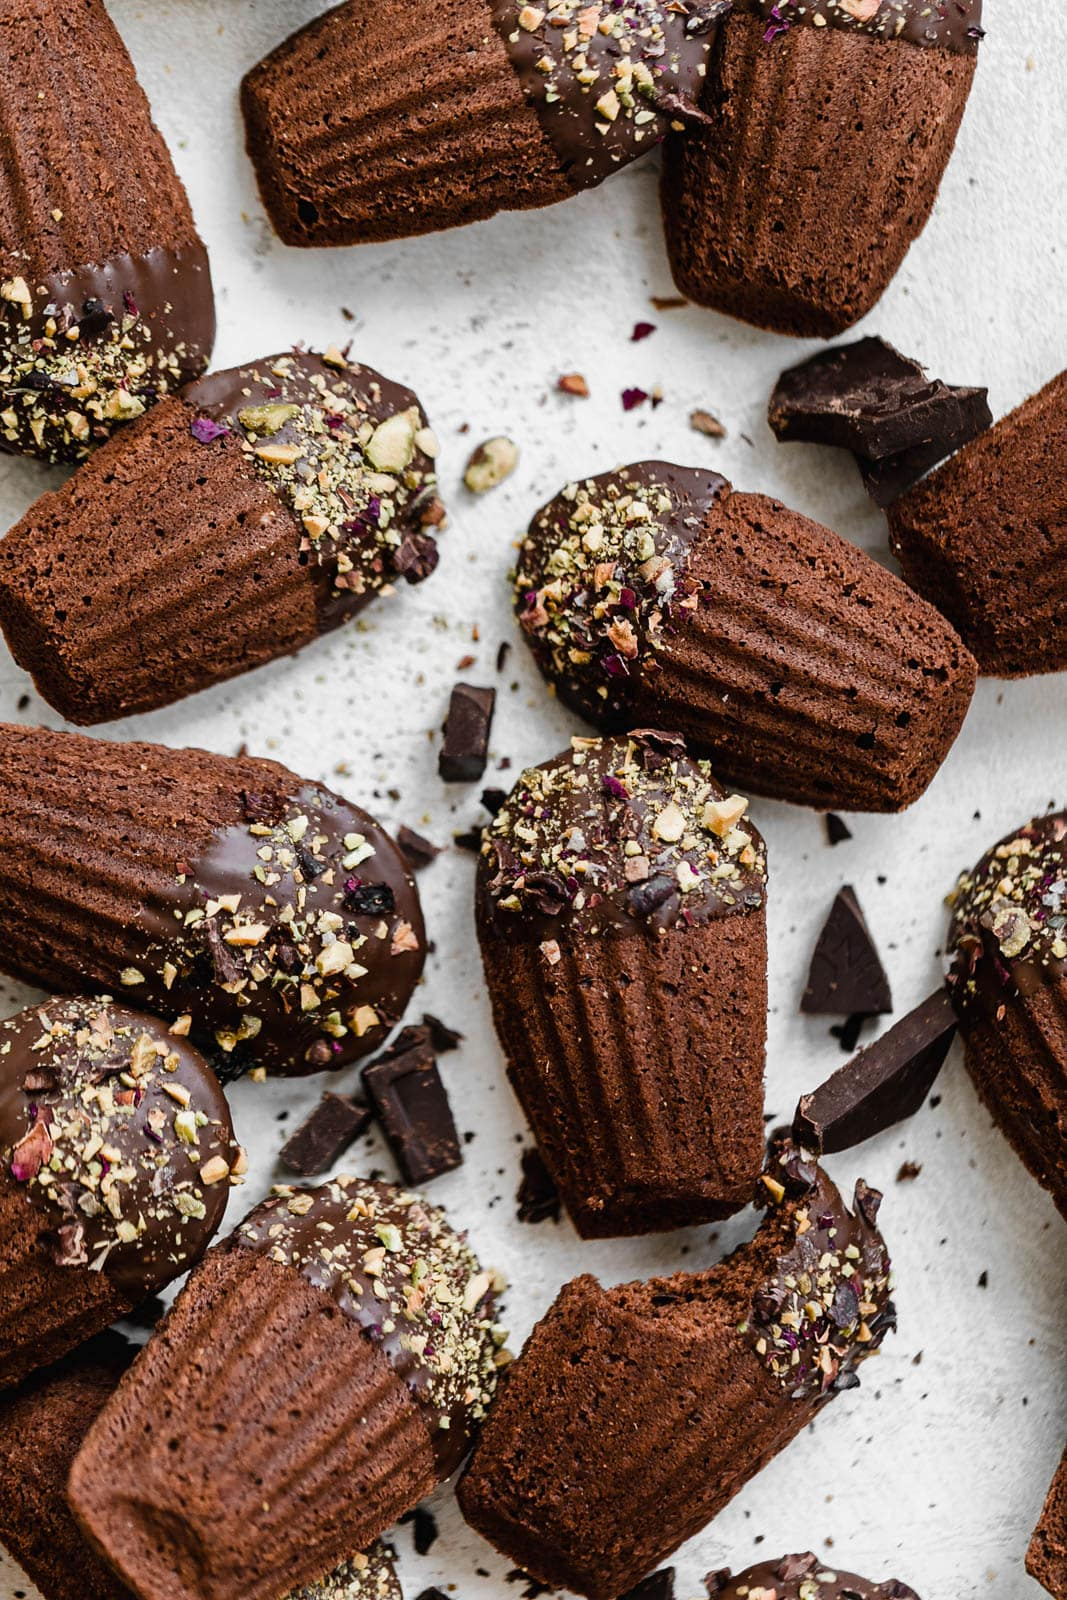 Chocolate-Dipped Chocolate Madeleines